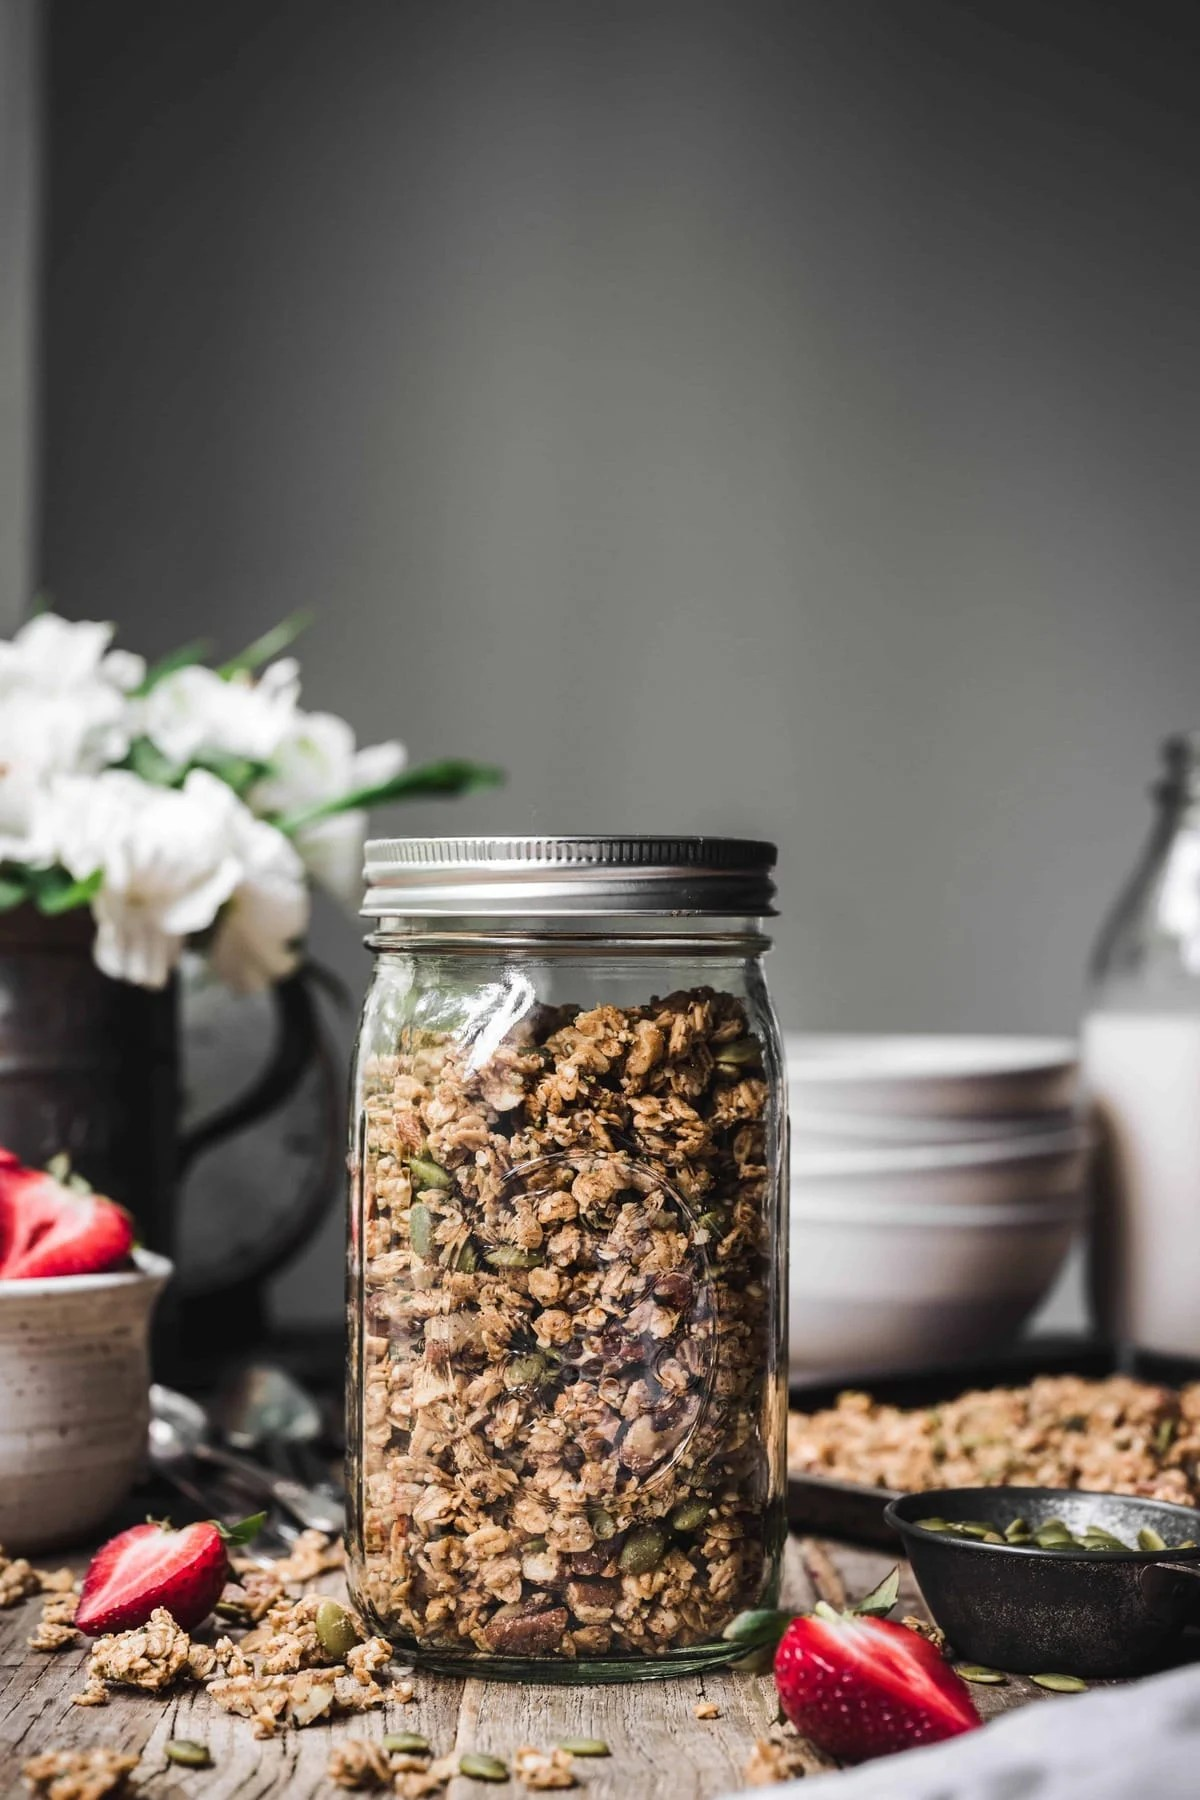 Side view of homemade granola in a glass jar on wood table